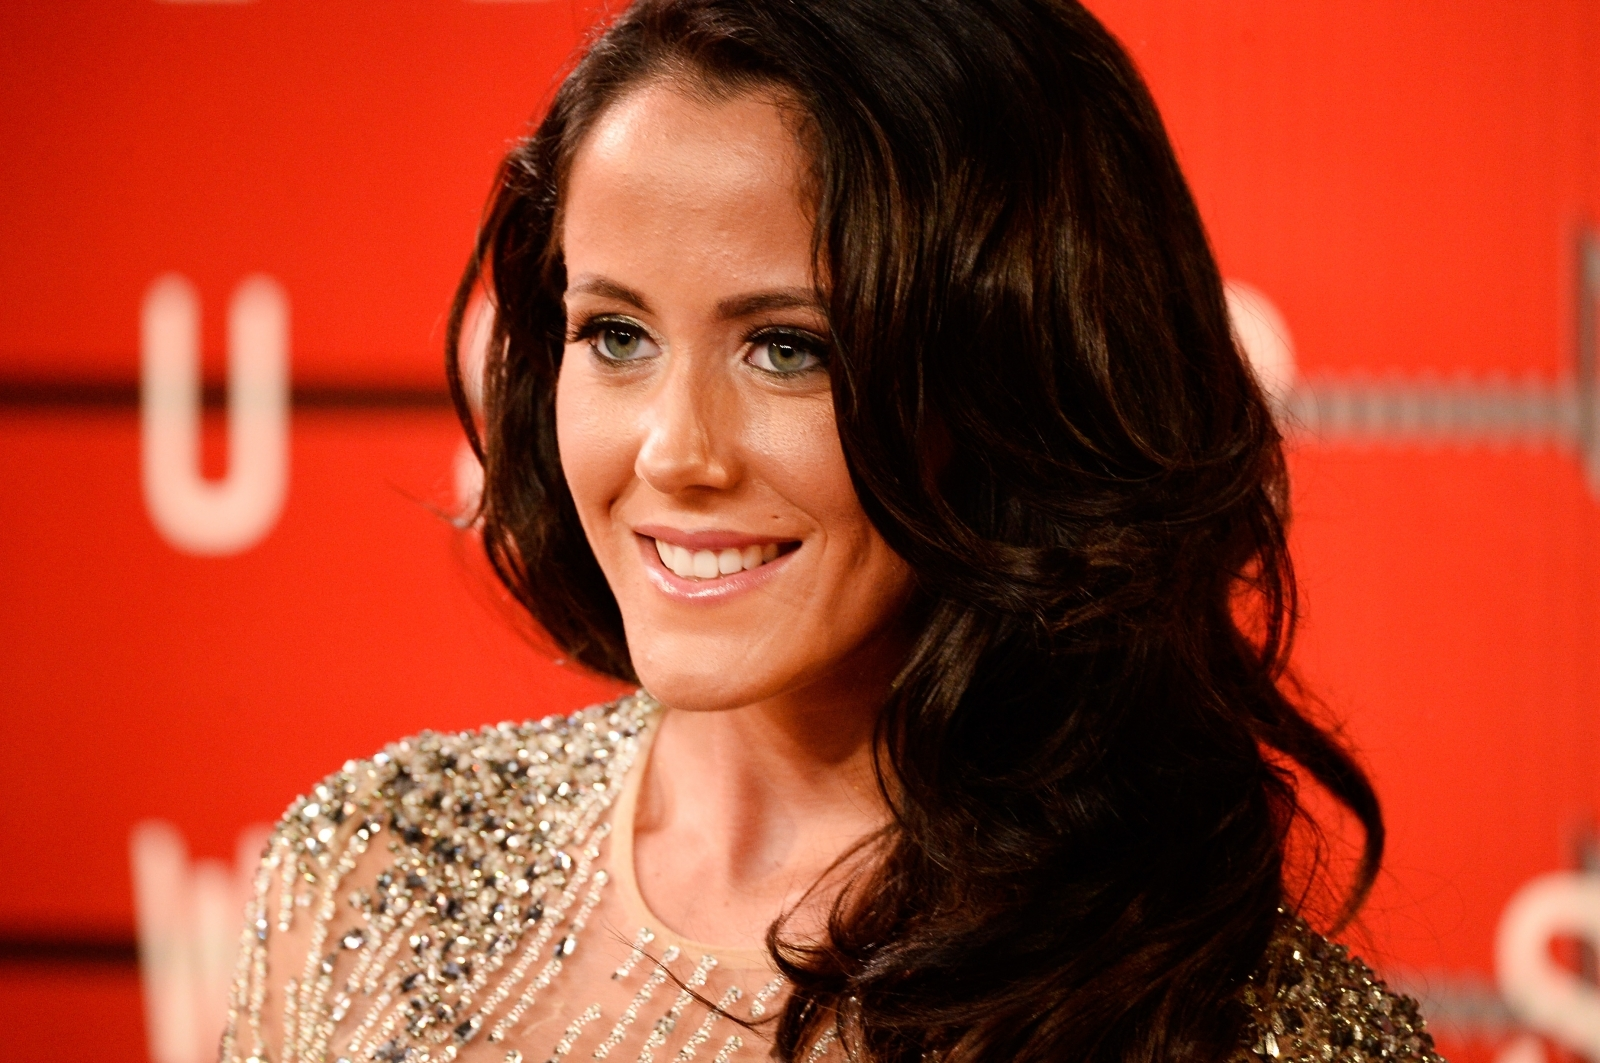 Teen Mom Jenelle Evans makes shocking confessions on drug and sex addiction: 'I would do anything'